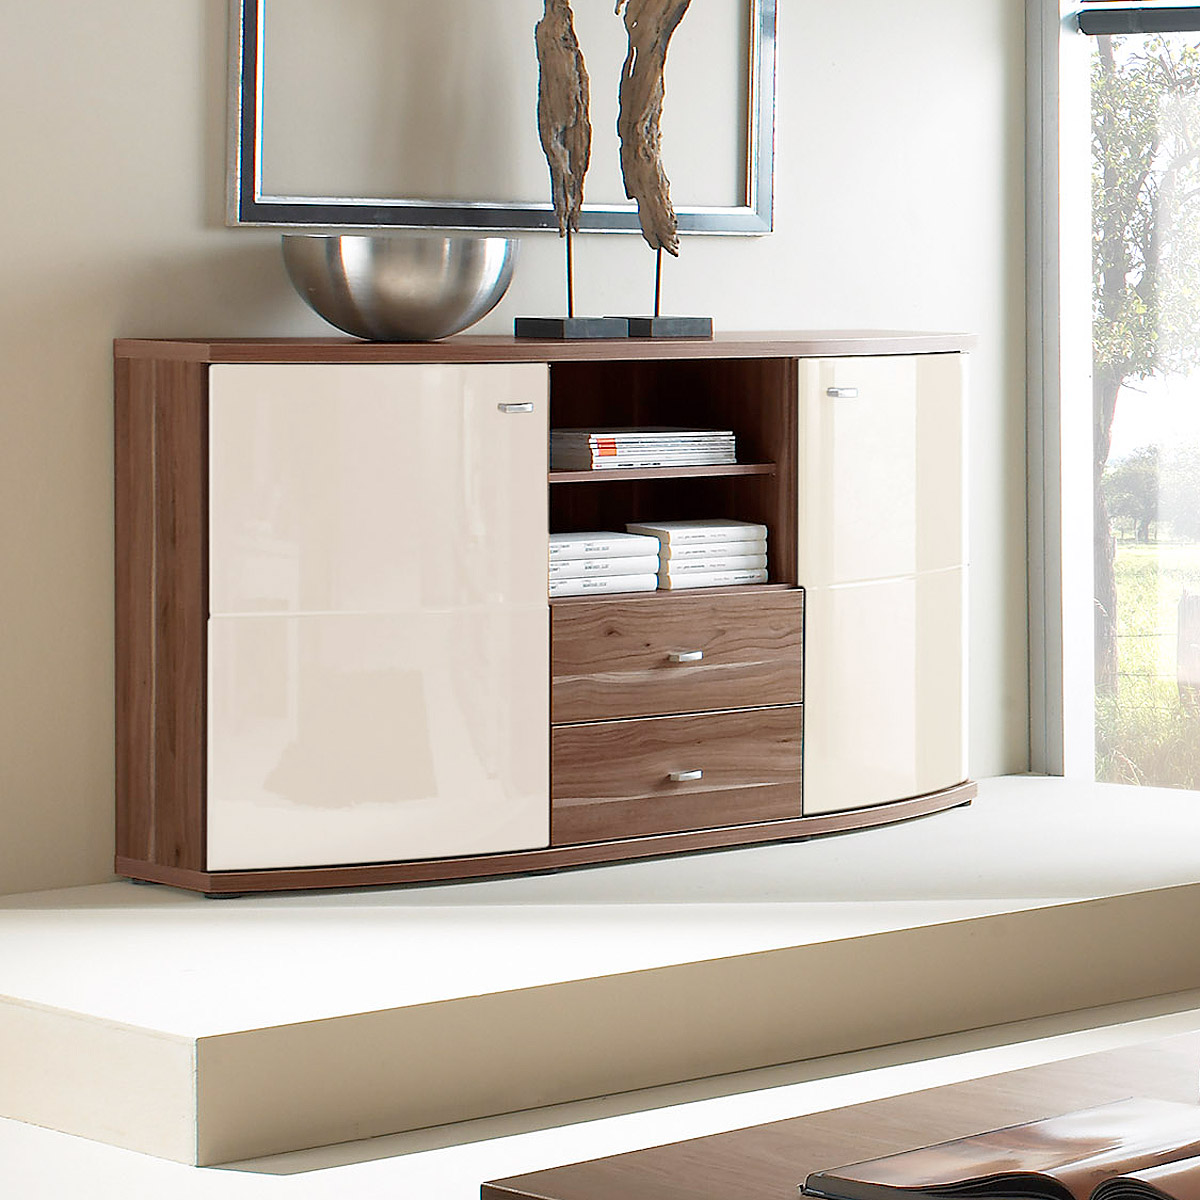 Baltimore Walnuss Kommode Sideboard Creme Nussbaum Fehler Sideboard Kentucky Kommode